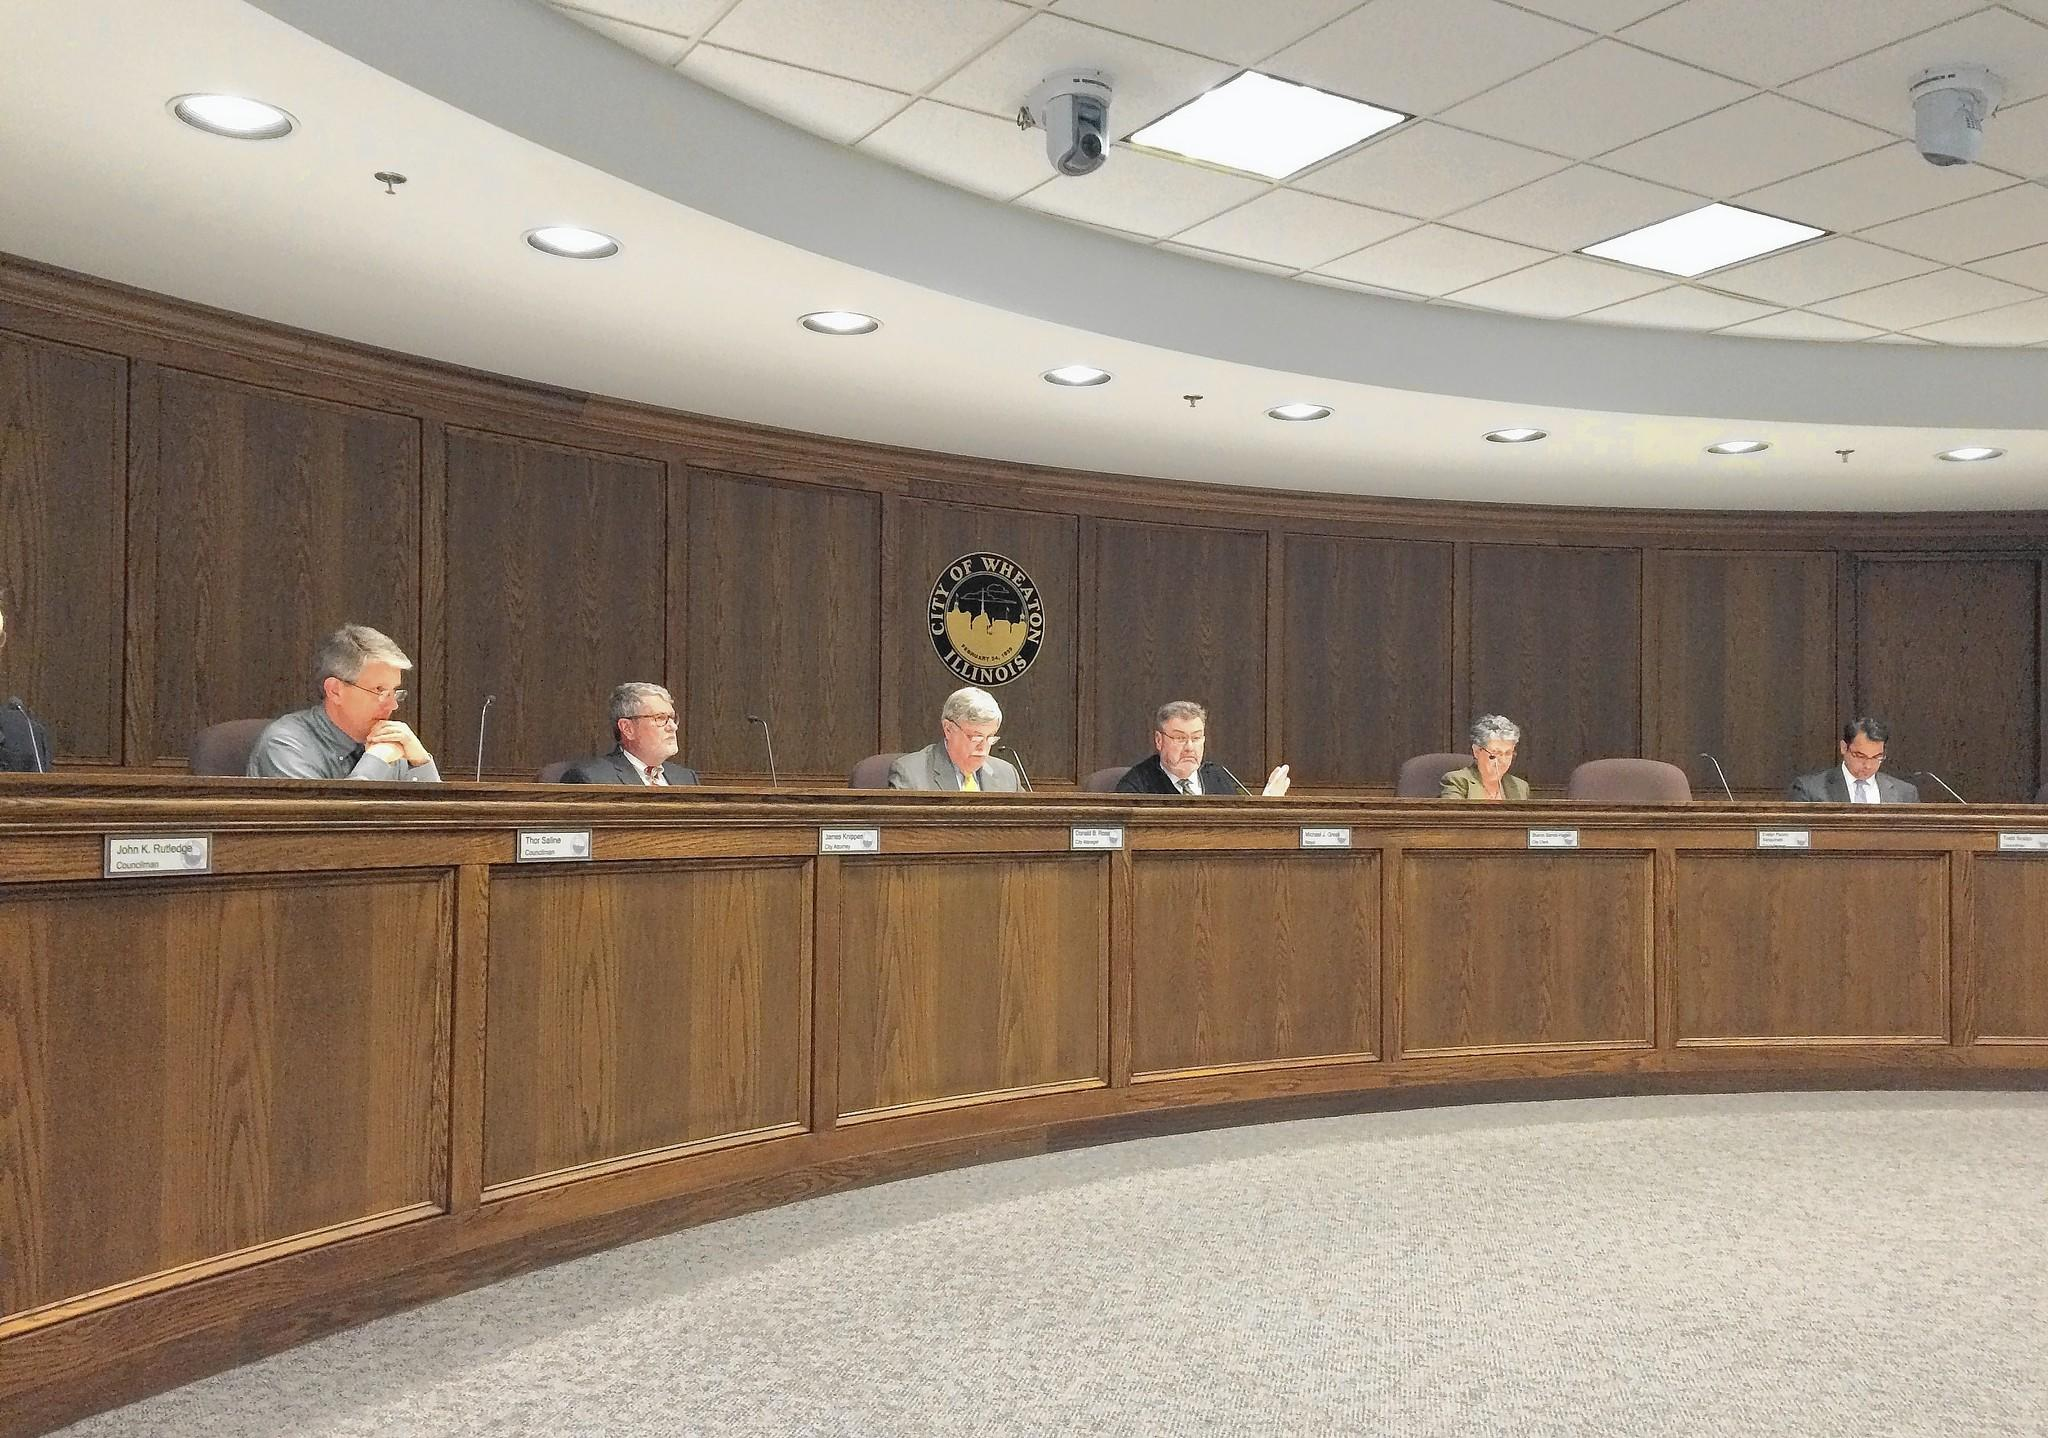 Wheaton council members voted to purchase salt through the county's joint purchasing program instead of the state's at a meeting on May 5.